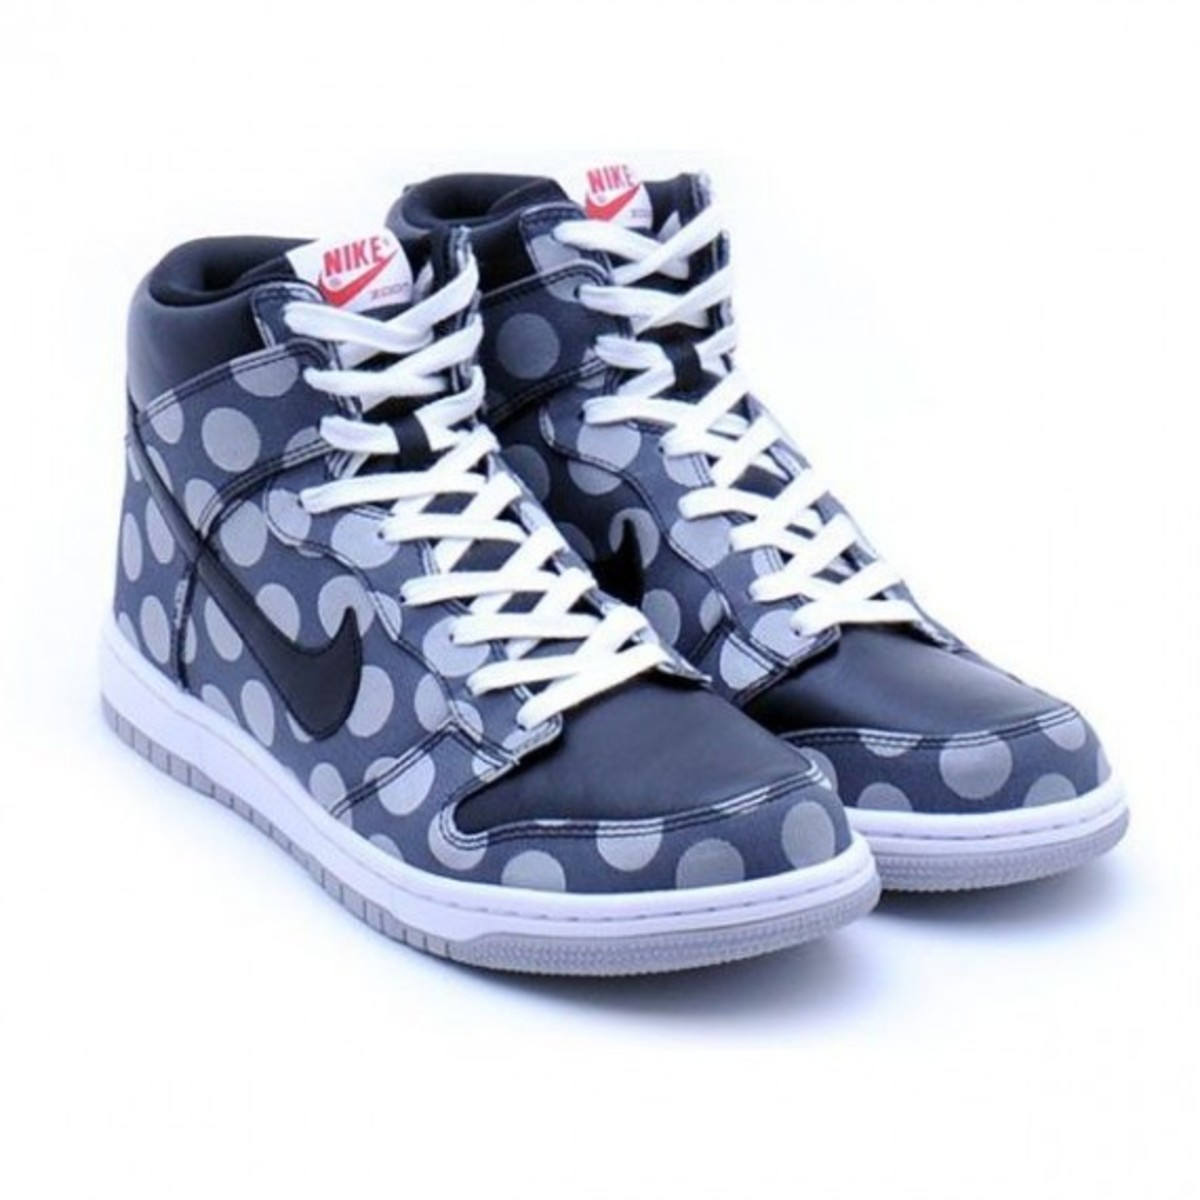 nike-dunk-high-supreme-polka-dot-1